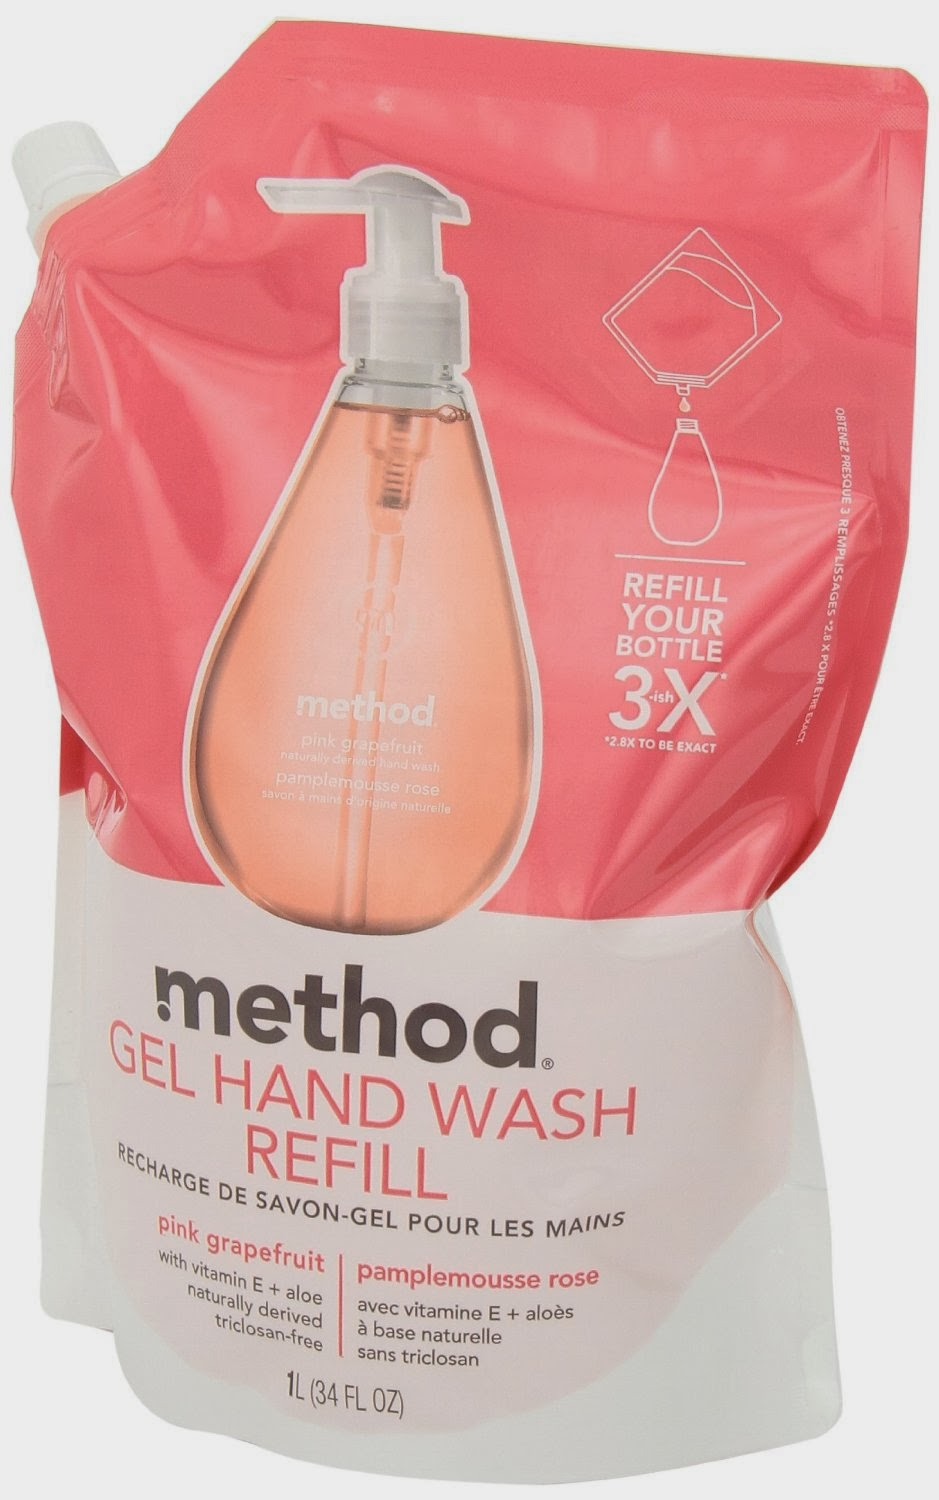 http://www.target.com/p/method-pink-grapefruit-gel-hand-wash-refill-34-oz/-/A-13532554#prodSlot=medium_1_11&term=method%20soap%20refill